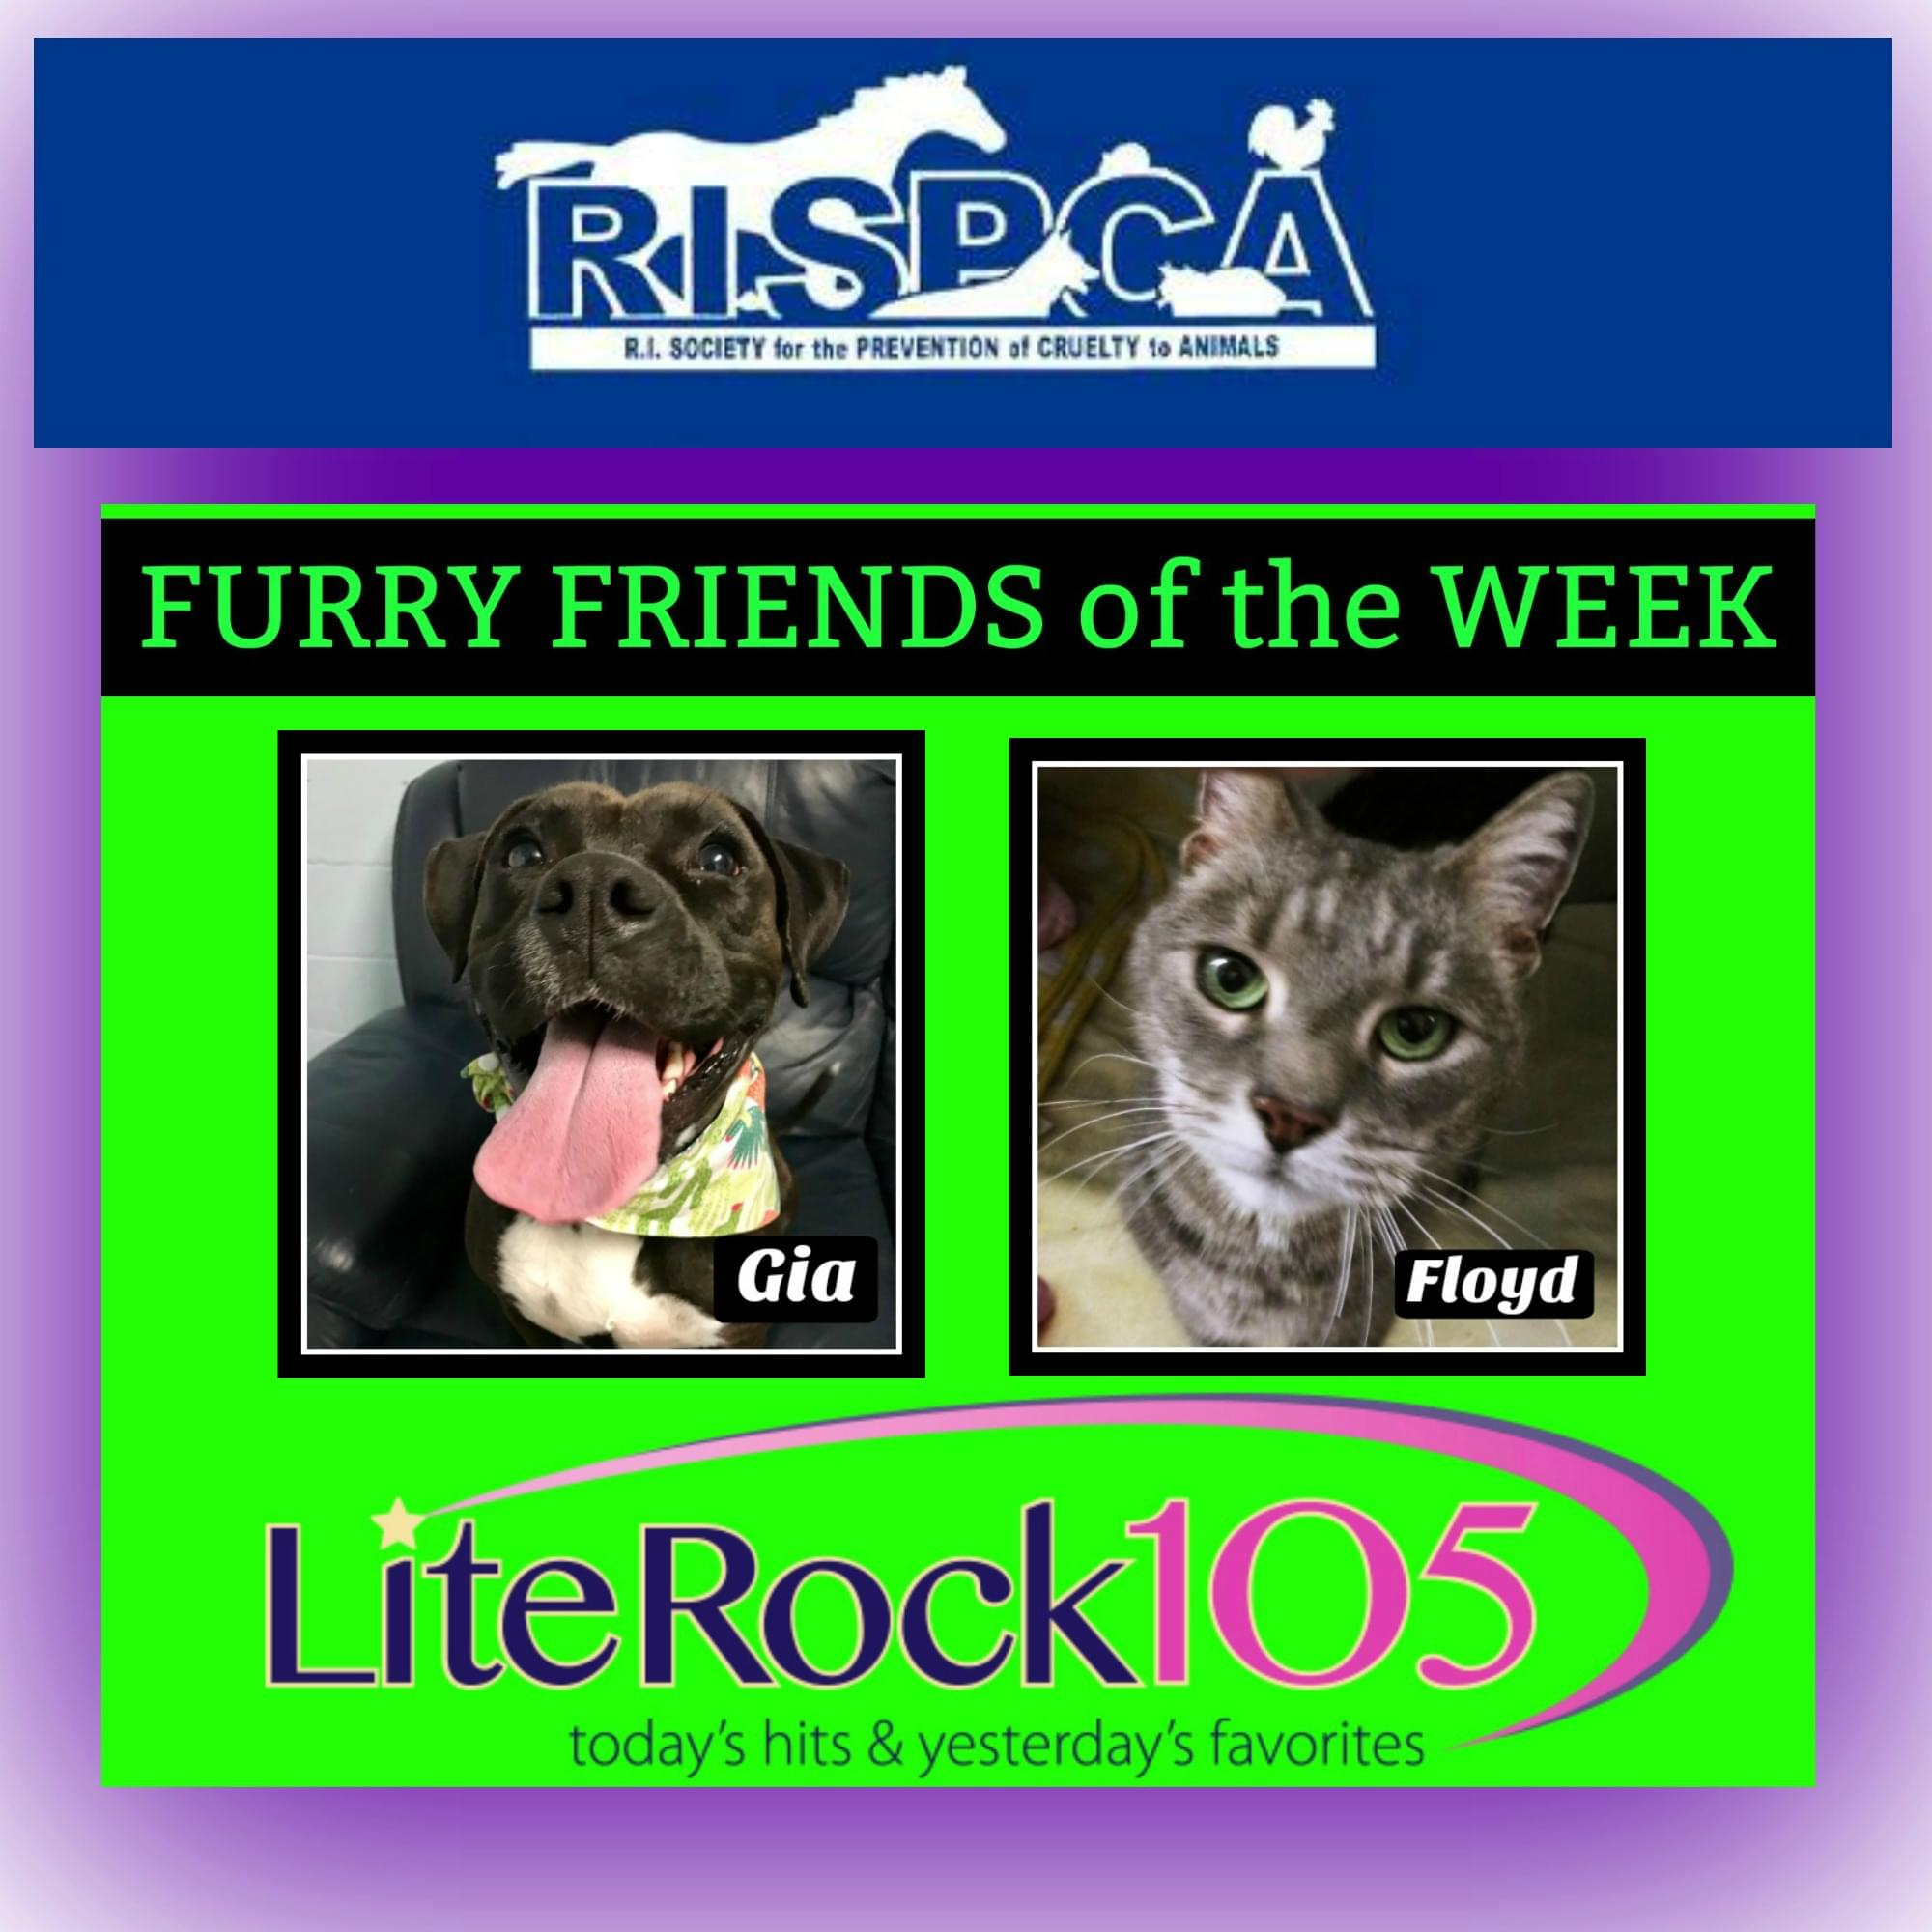 Meet Floyd and Gia! Our FURRY FRIENDS of the WEEK! (03/04/19)